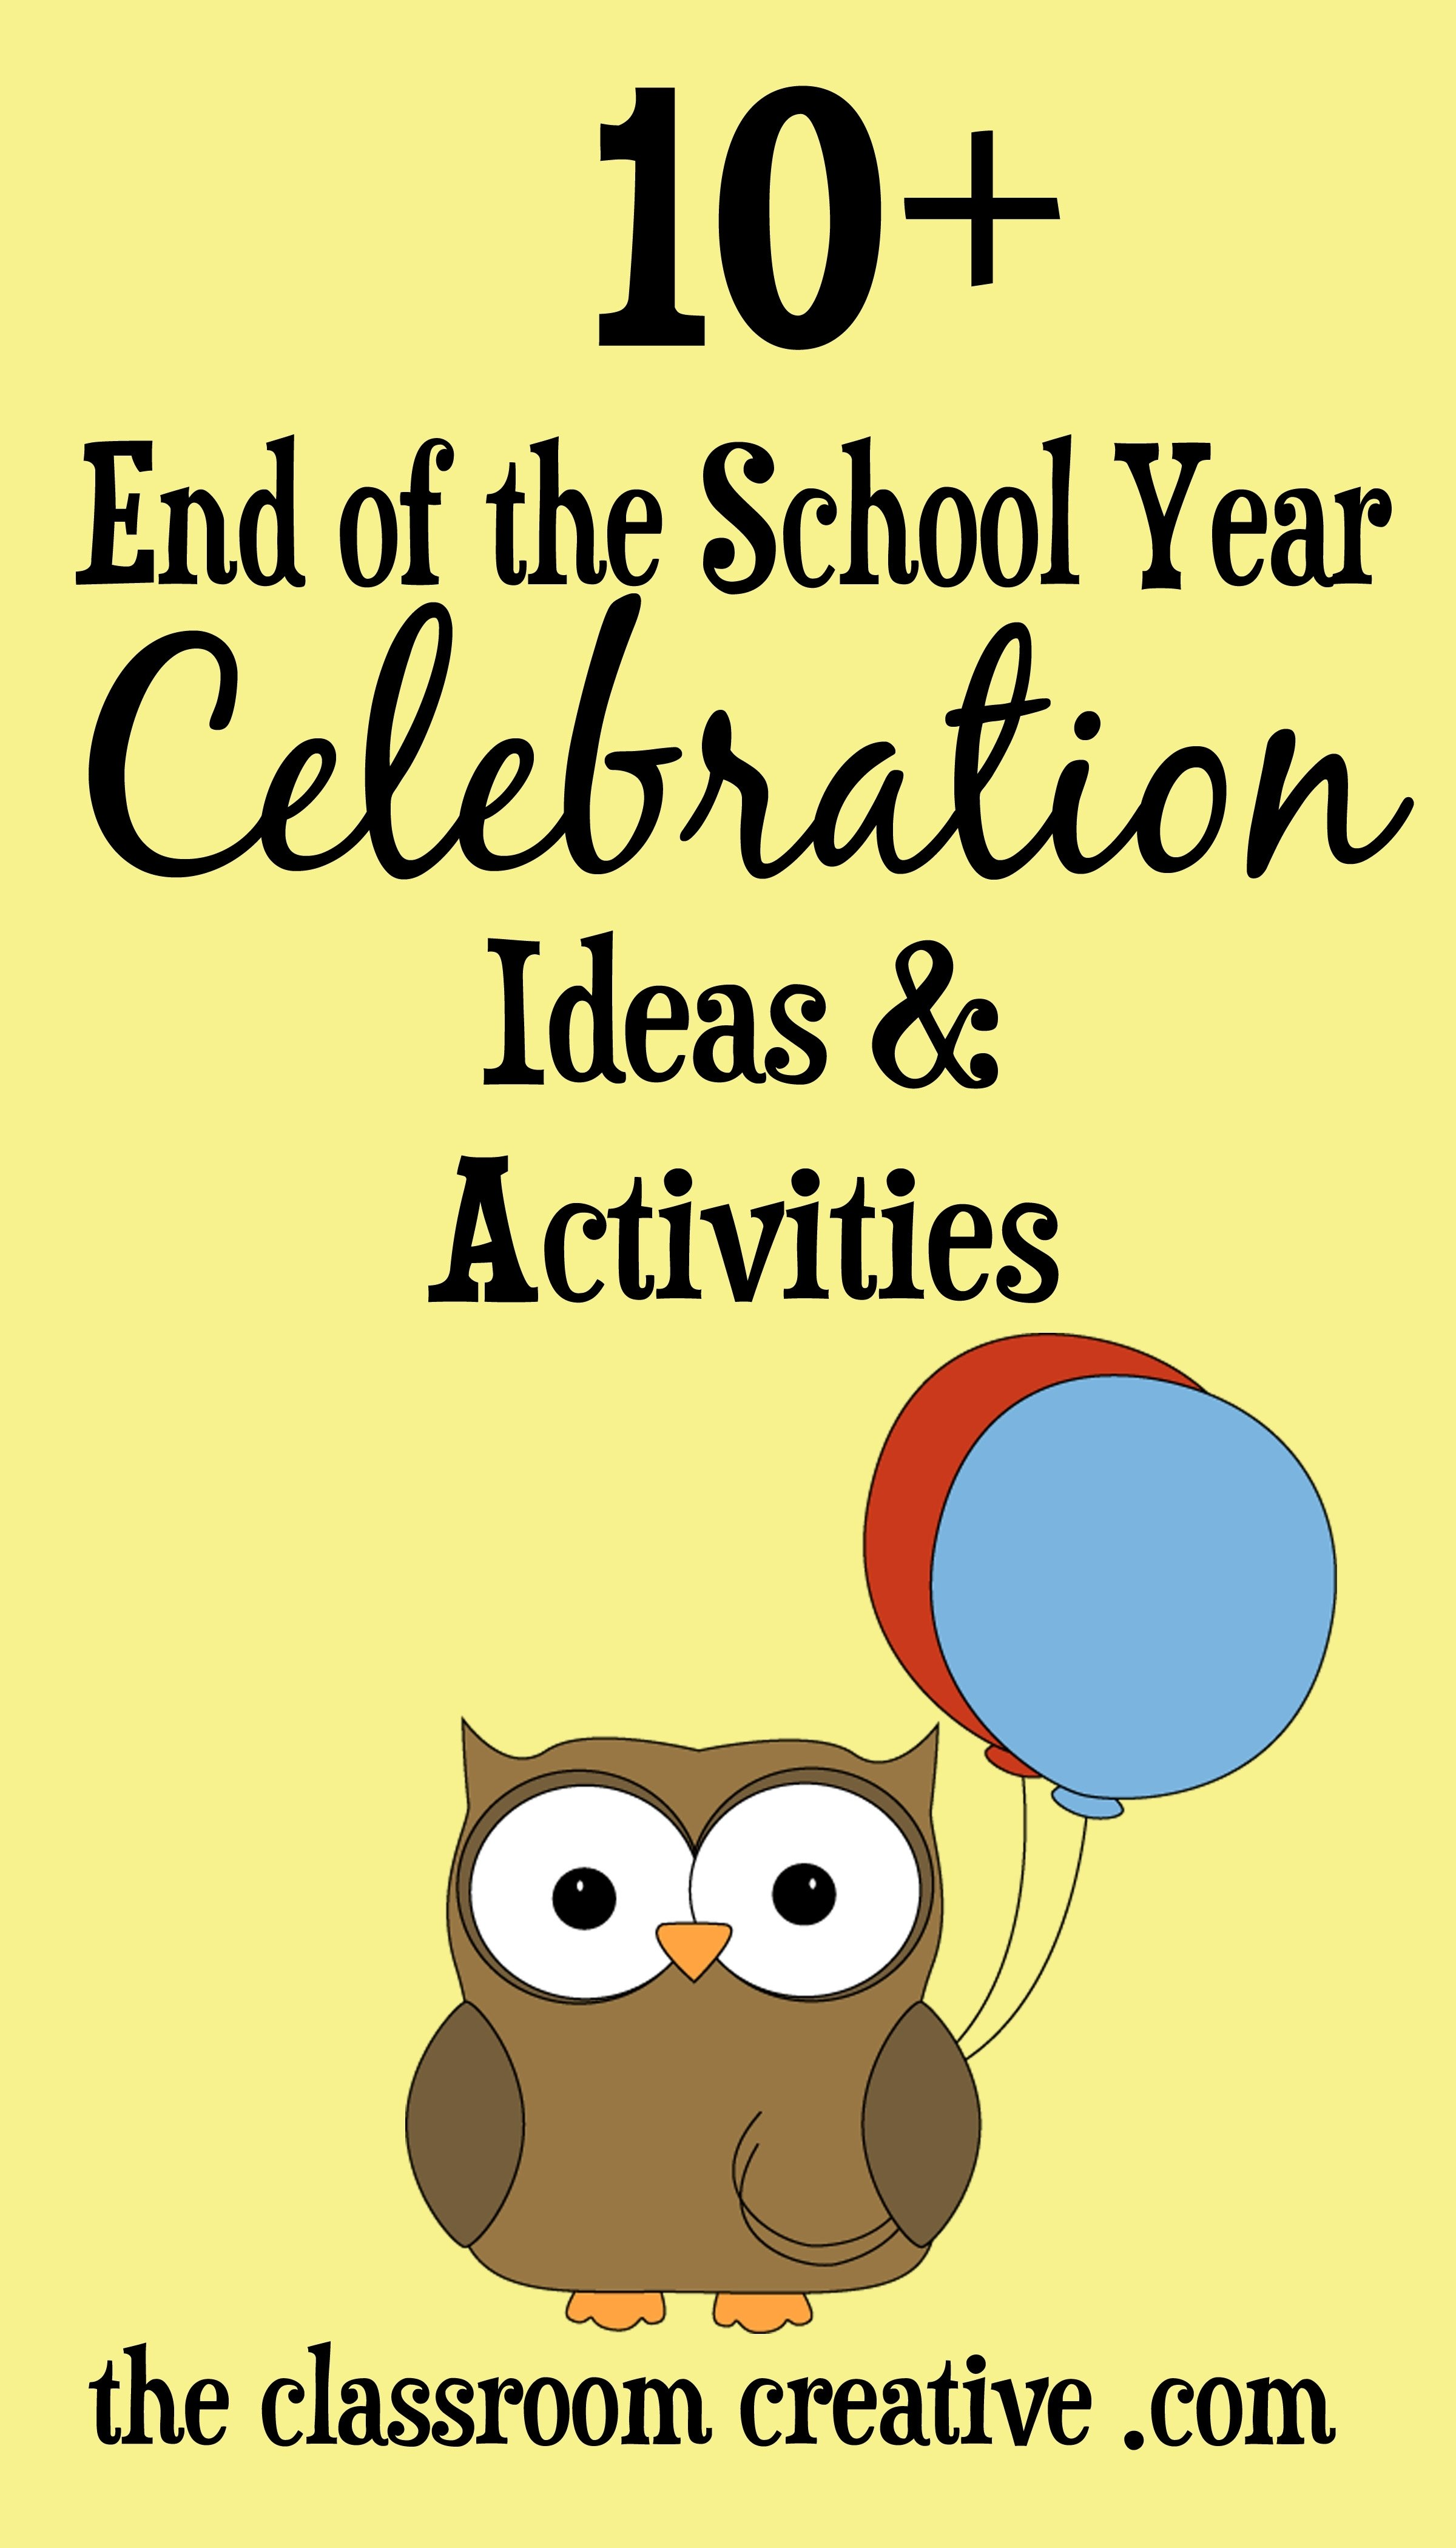 10 Cute End Of Year School Party Ideas end of the school year celebration ideas activities 1